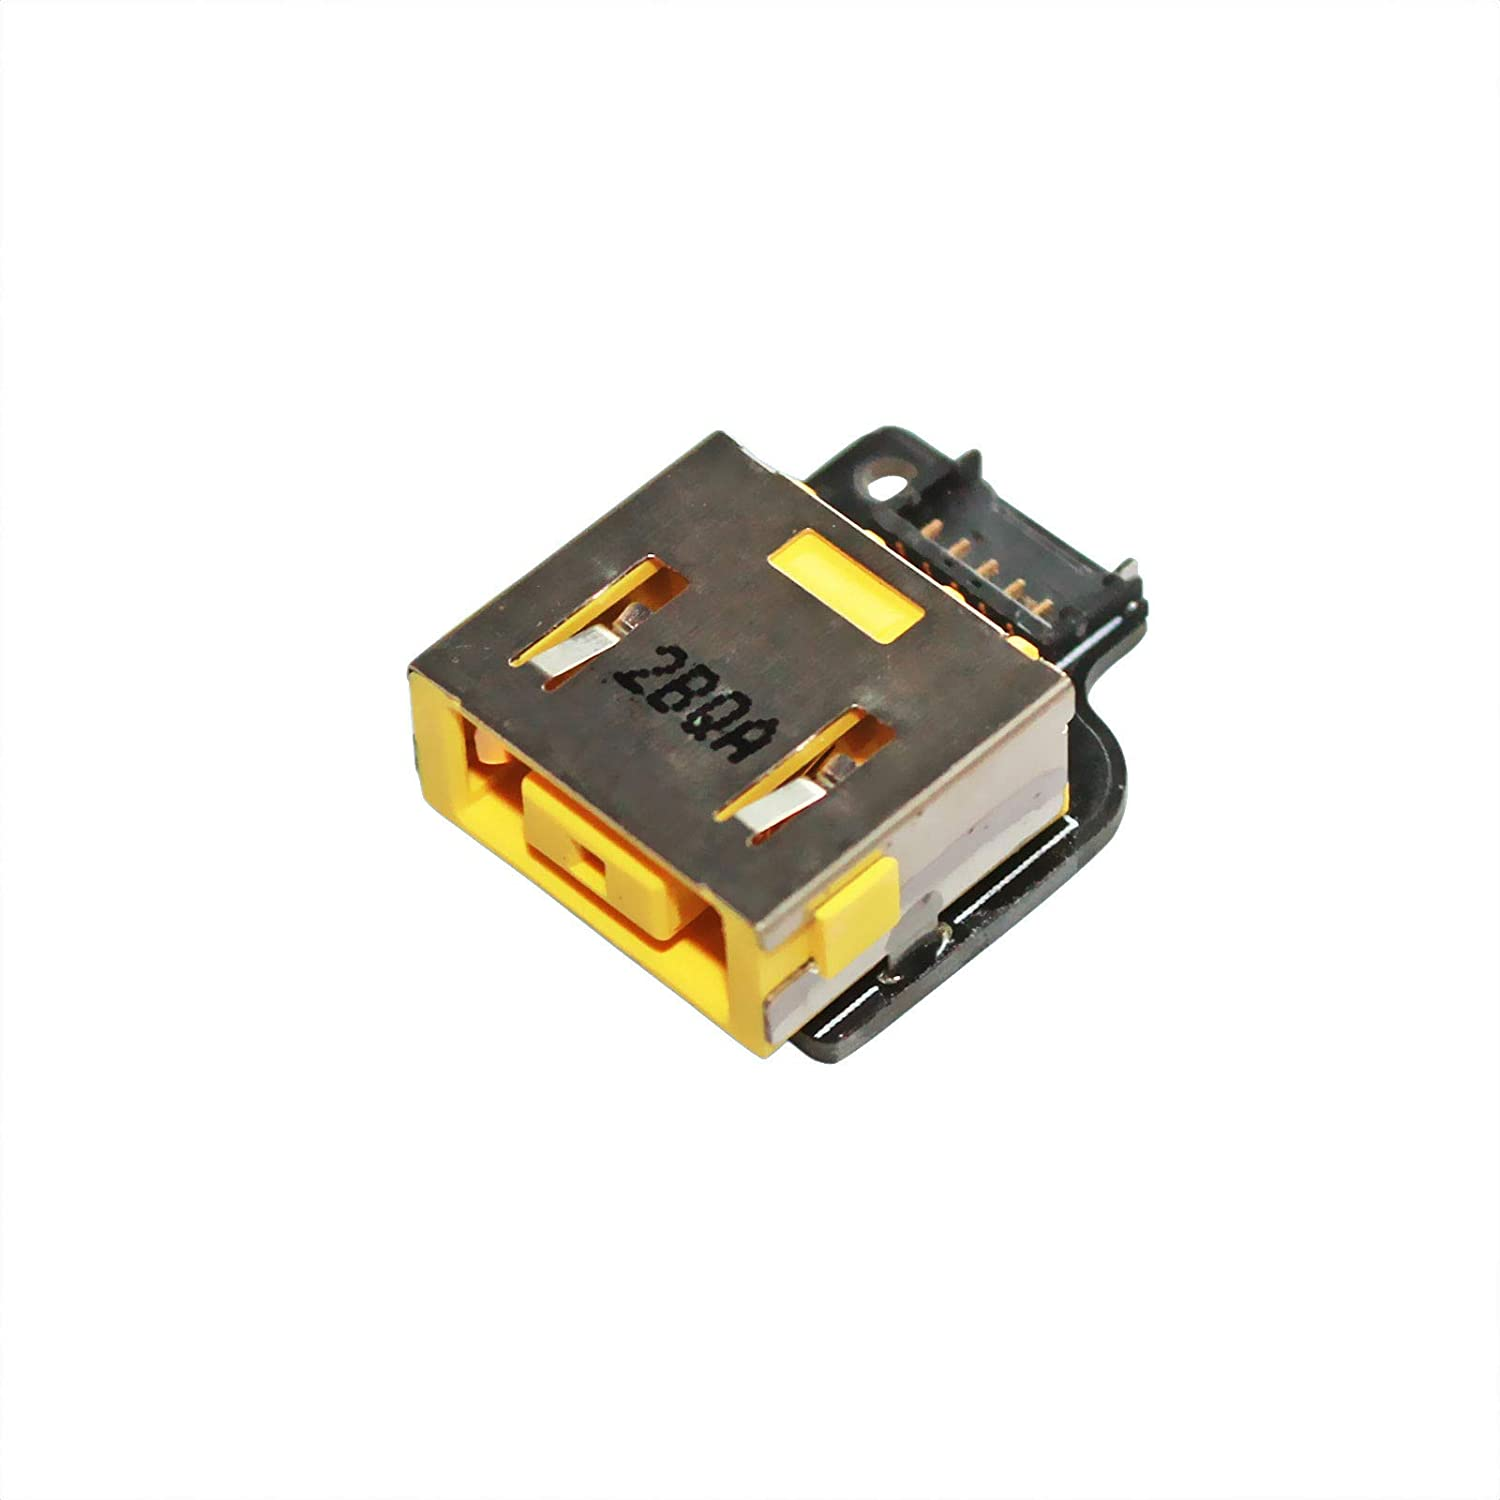 GinTai DC AC Power Jack Socket Replacement for Lenovo IDEAPAD Yoga 11 11-5934 11S 5937 11S-59370514